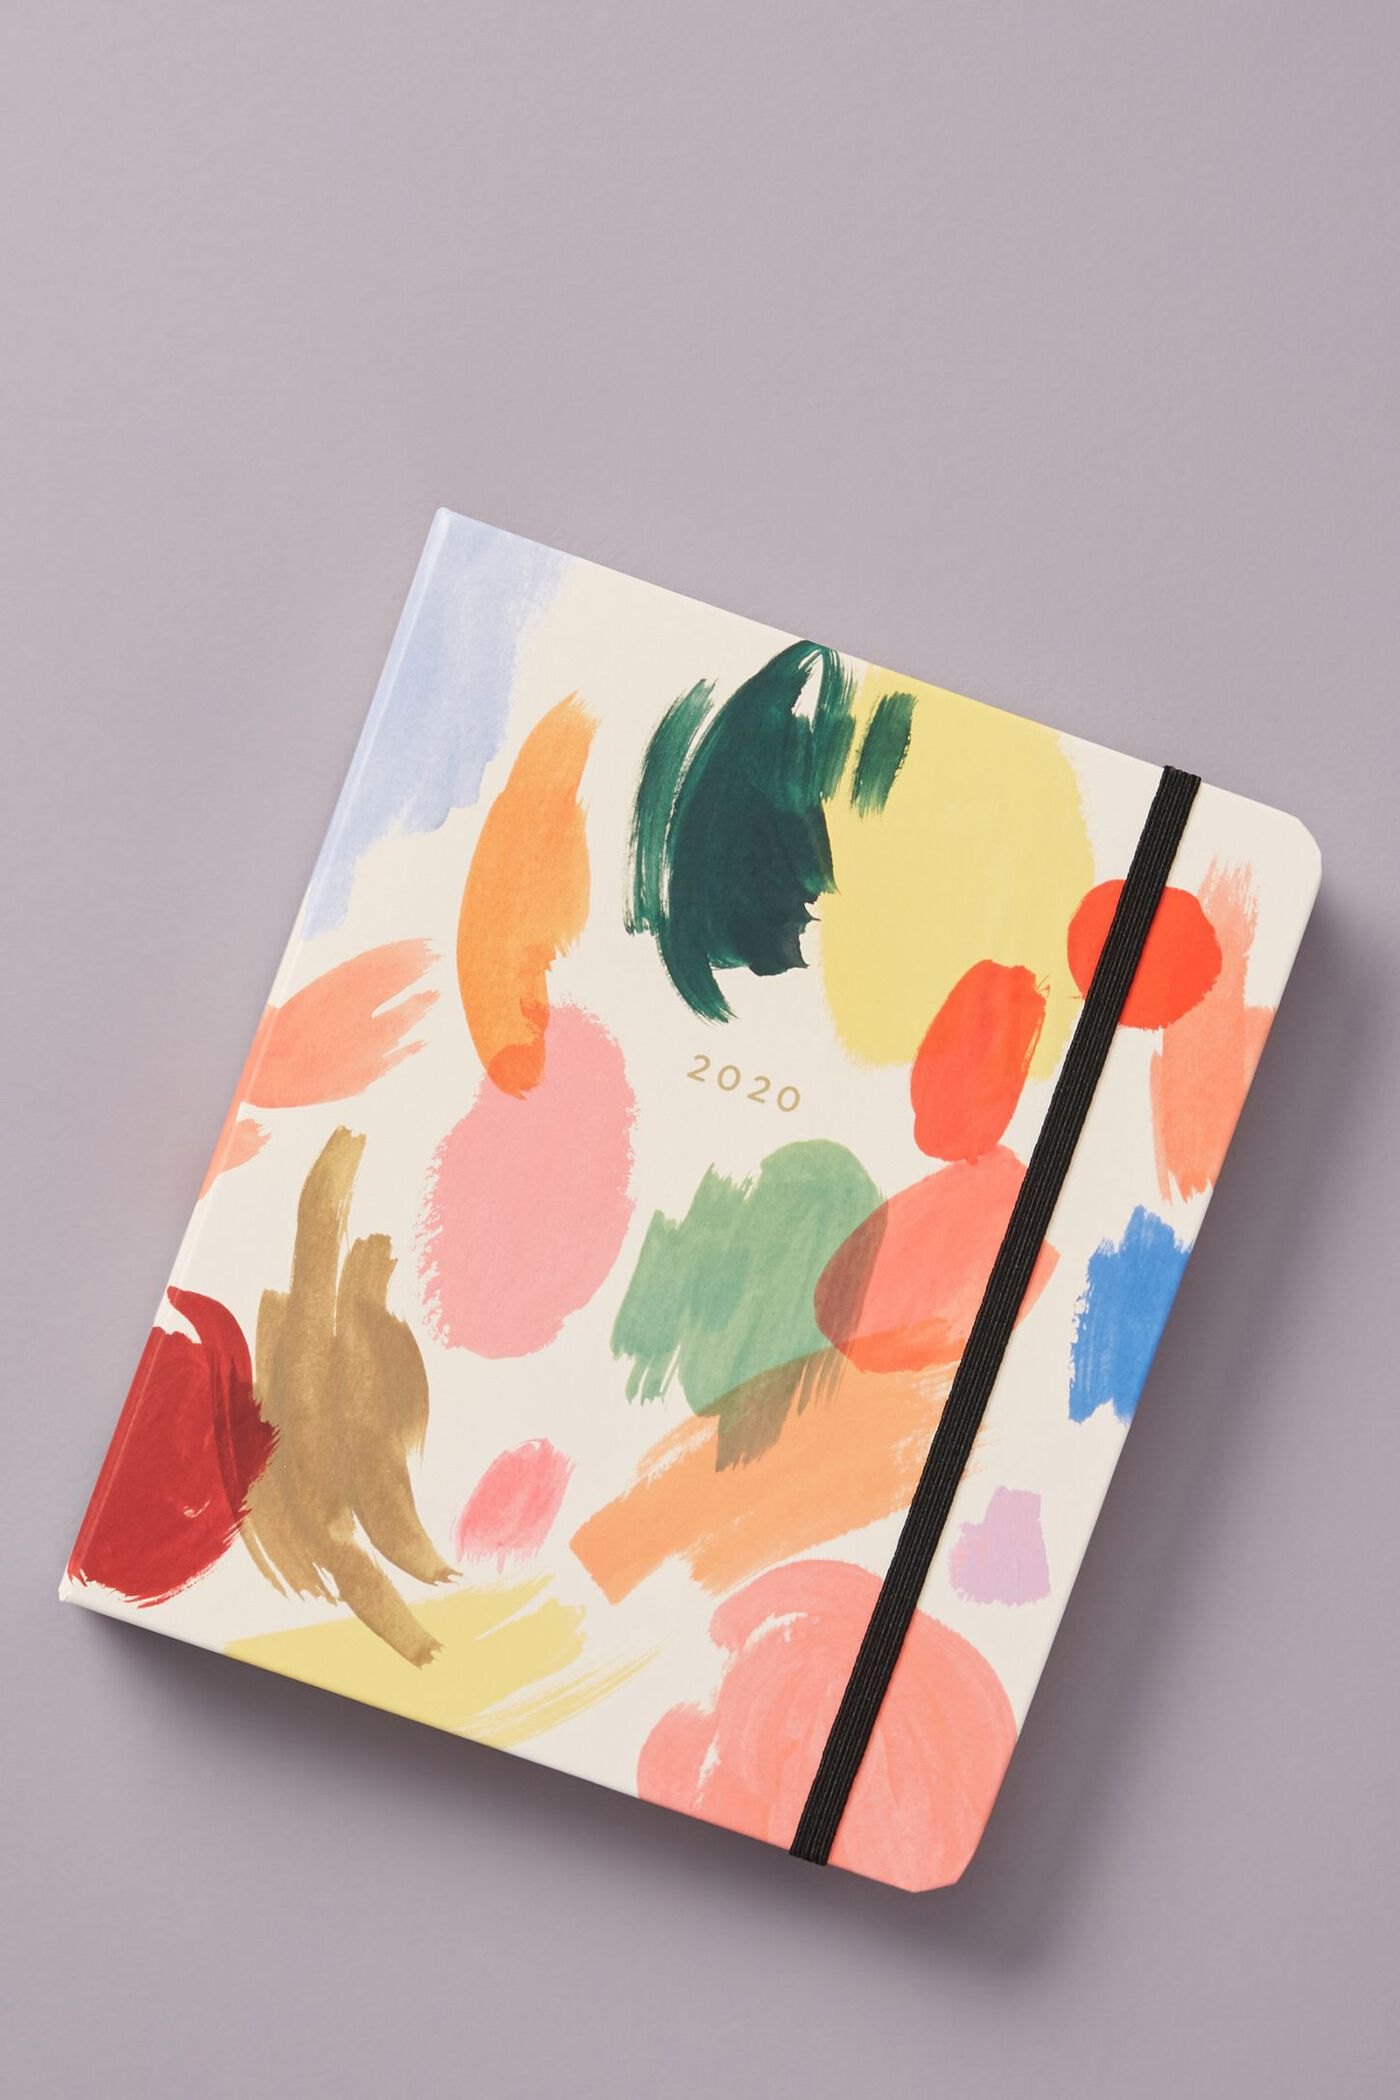 photo of colorful 2020 planner